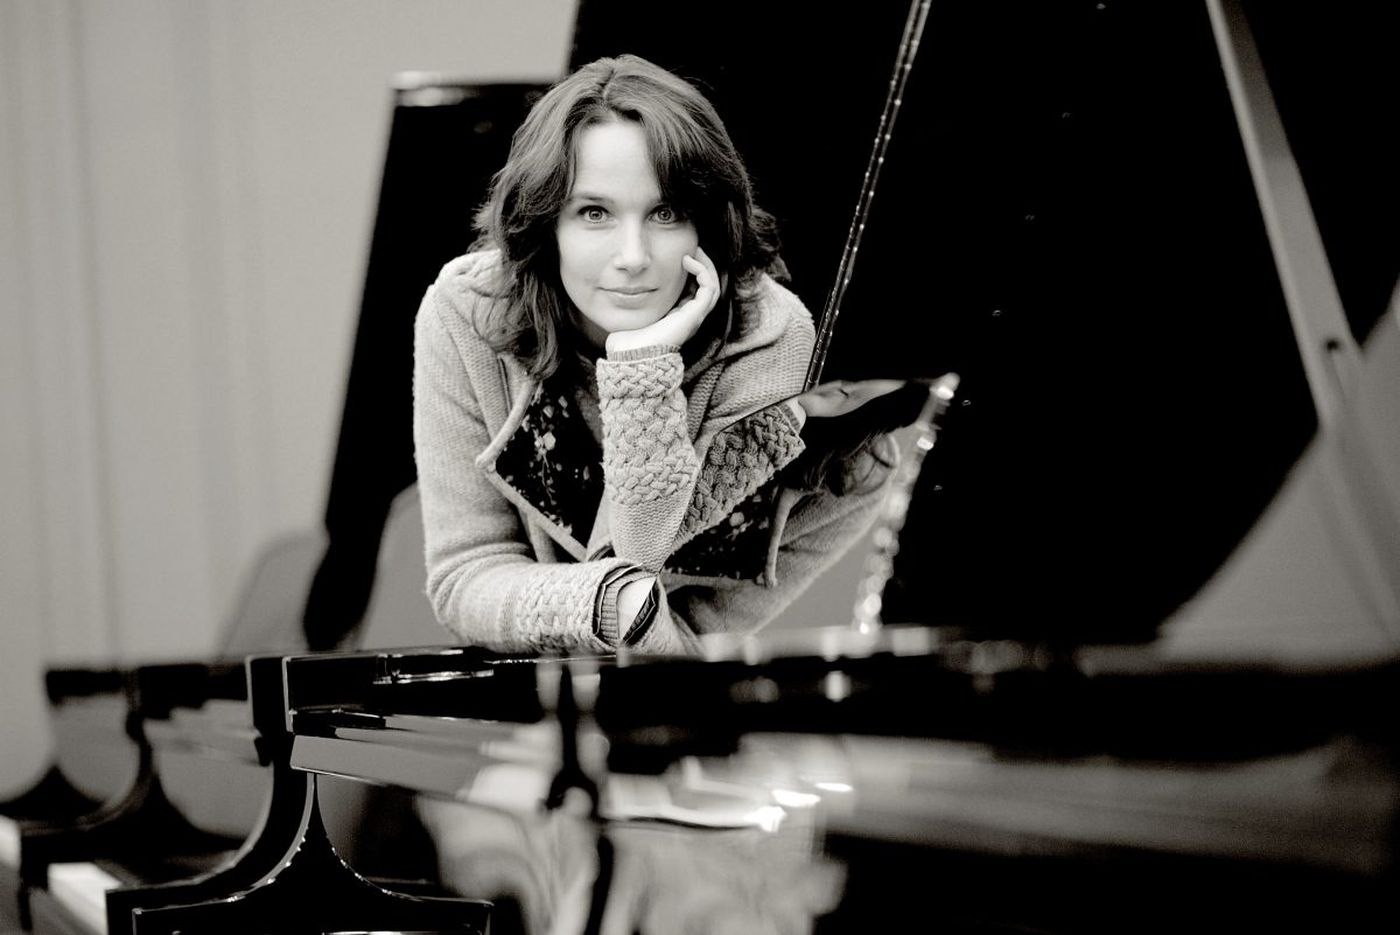 Yannick and Grimaud connect like soul mates in Beethoven's 'Piano Concerto No. 4'